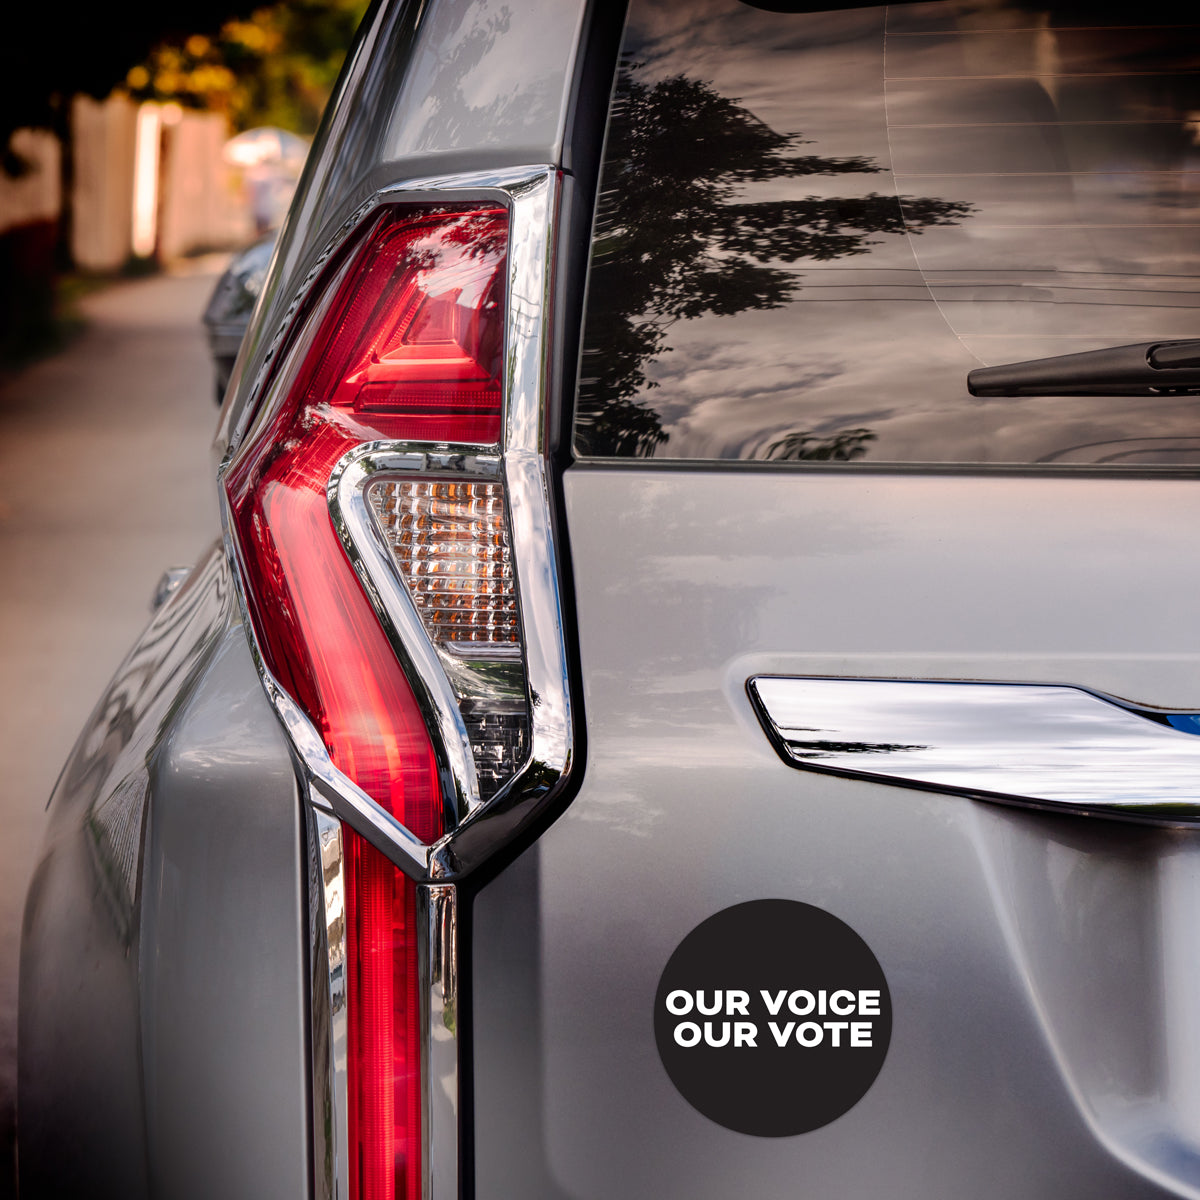 OUR VOICE OUR VOTE Car Magnets